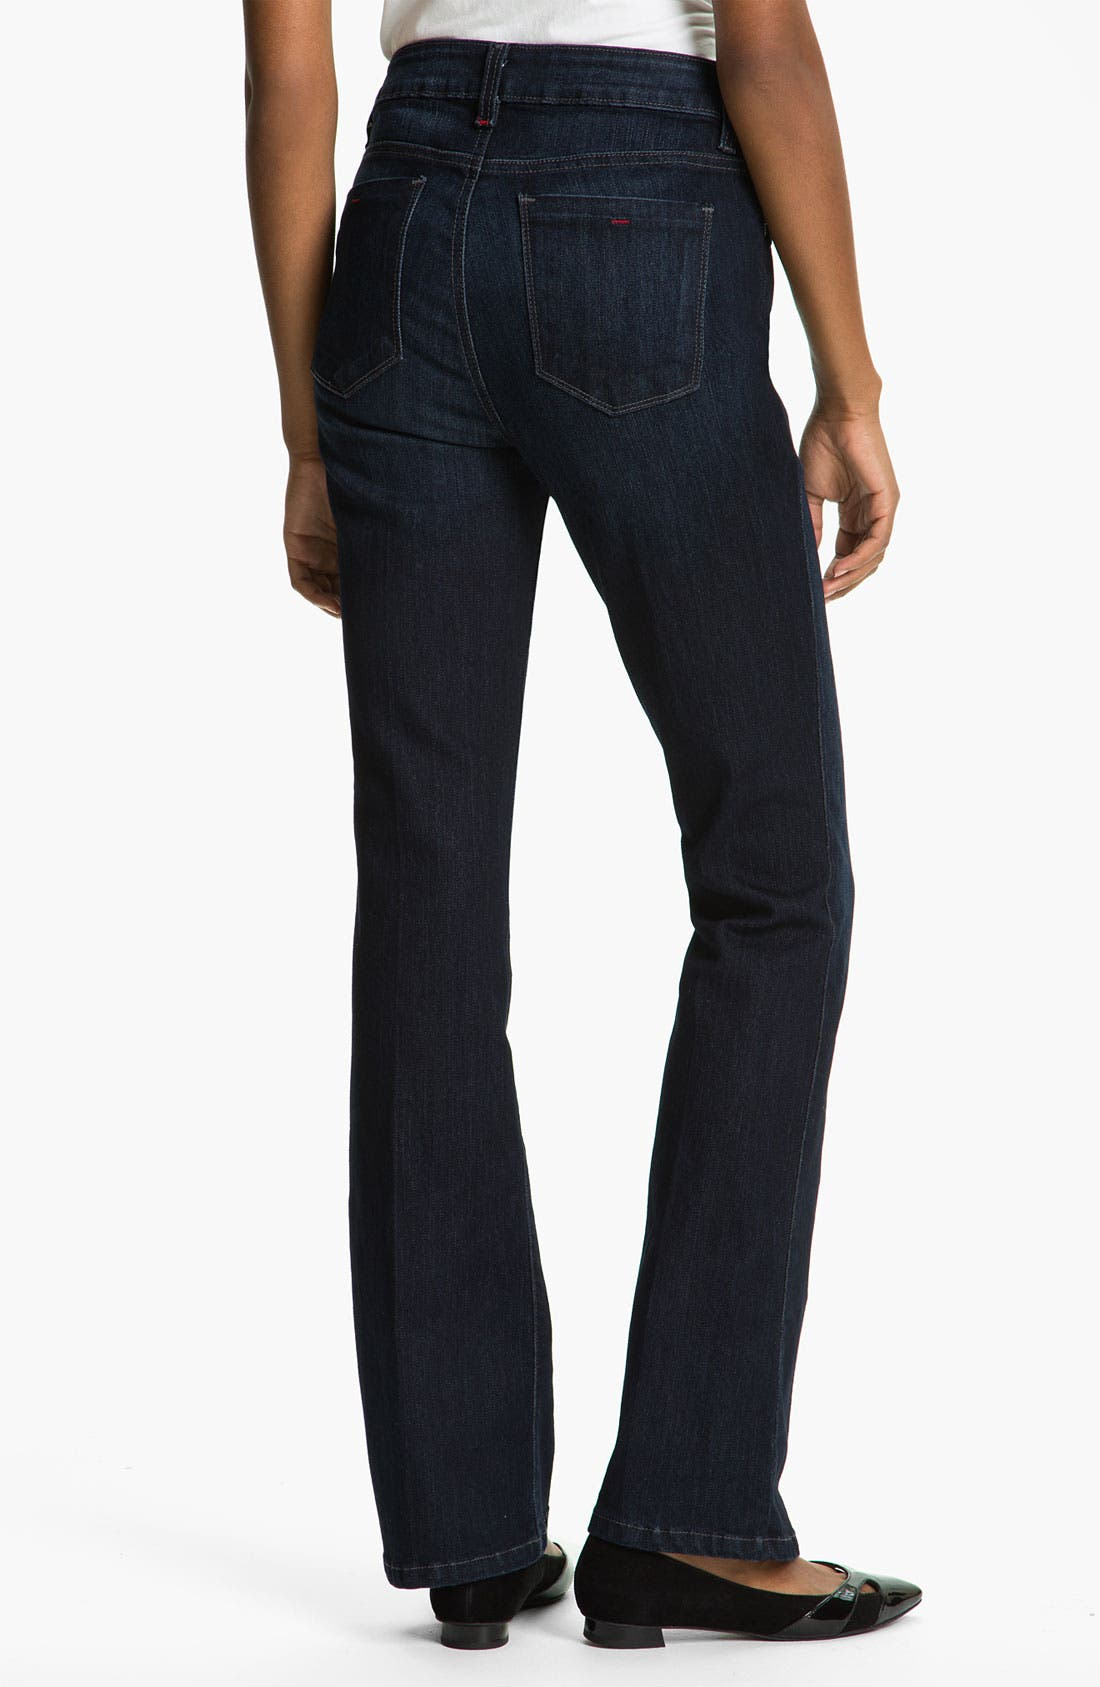 Alternate Image 2  - Miraclebody 'Betty' Bootcut Stretch Jeans